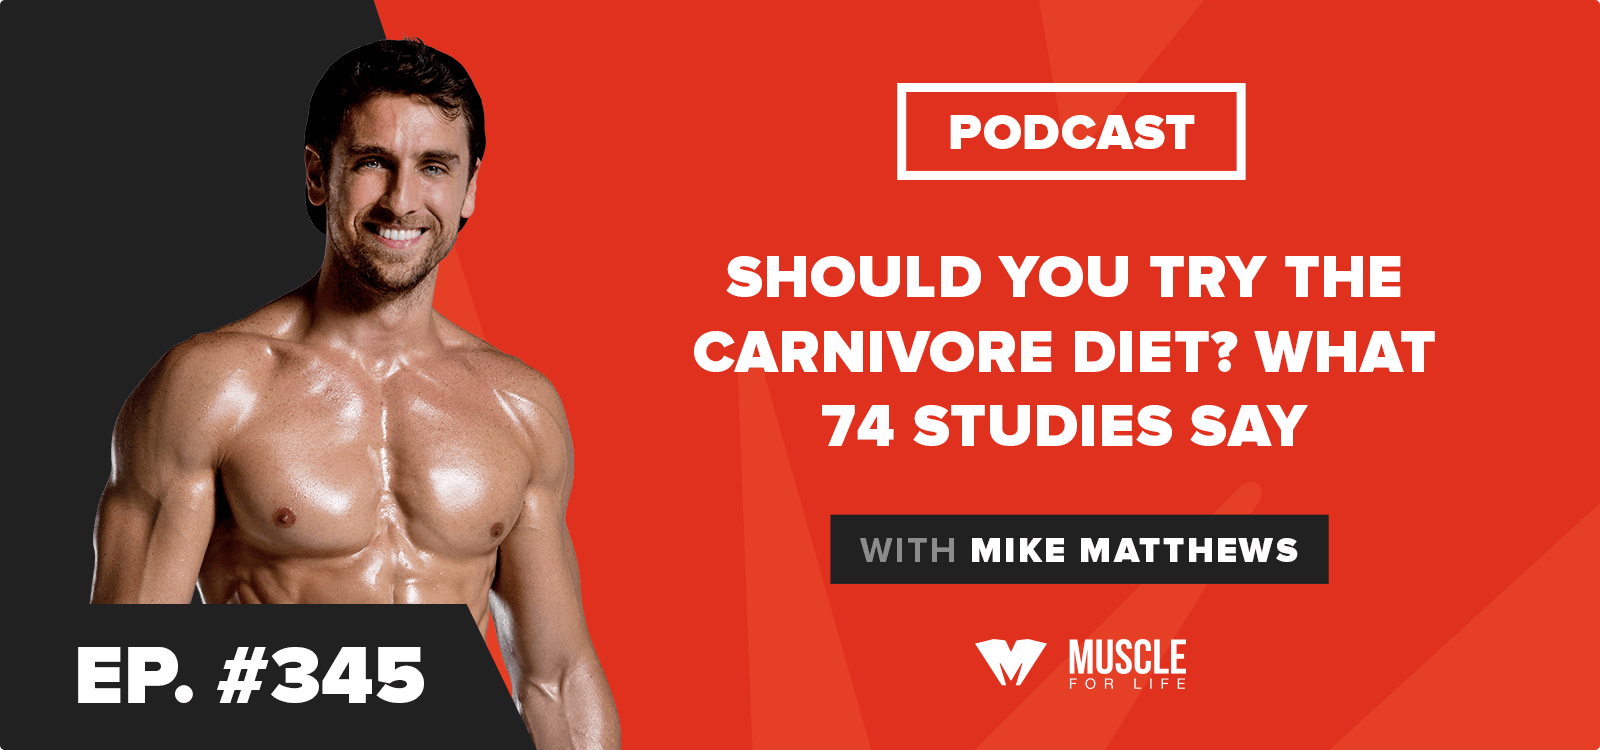 Should You Try the Carnivore Diet? What 74 Studies Say